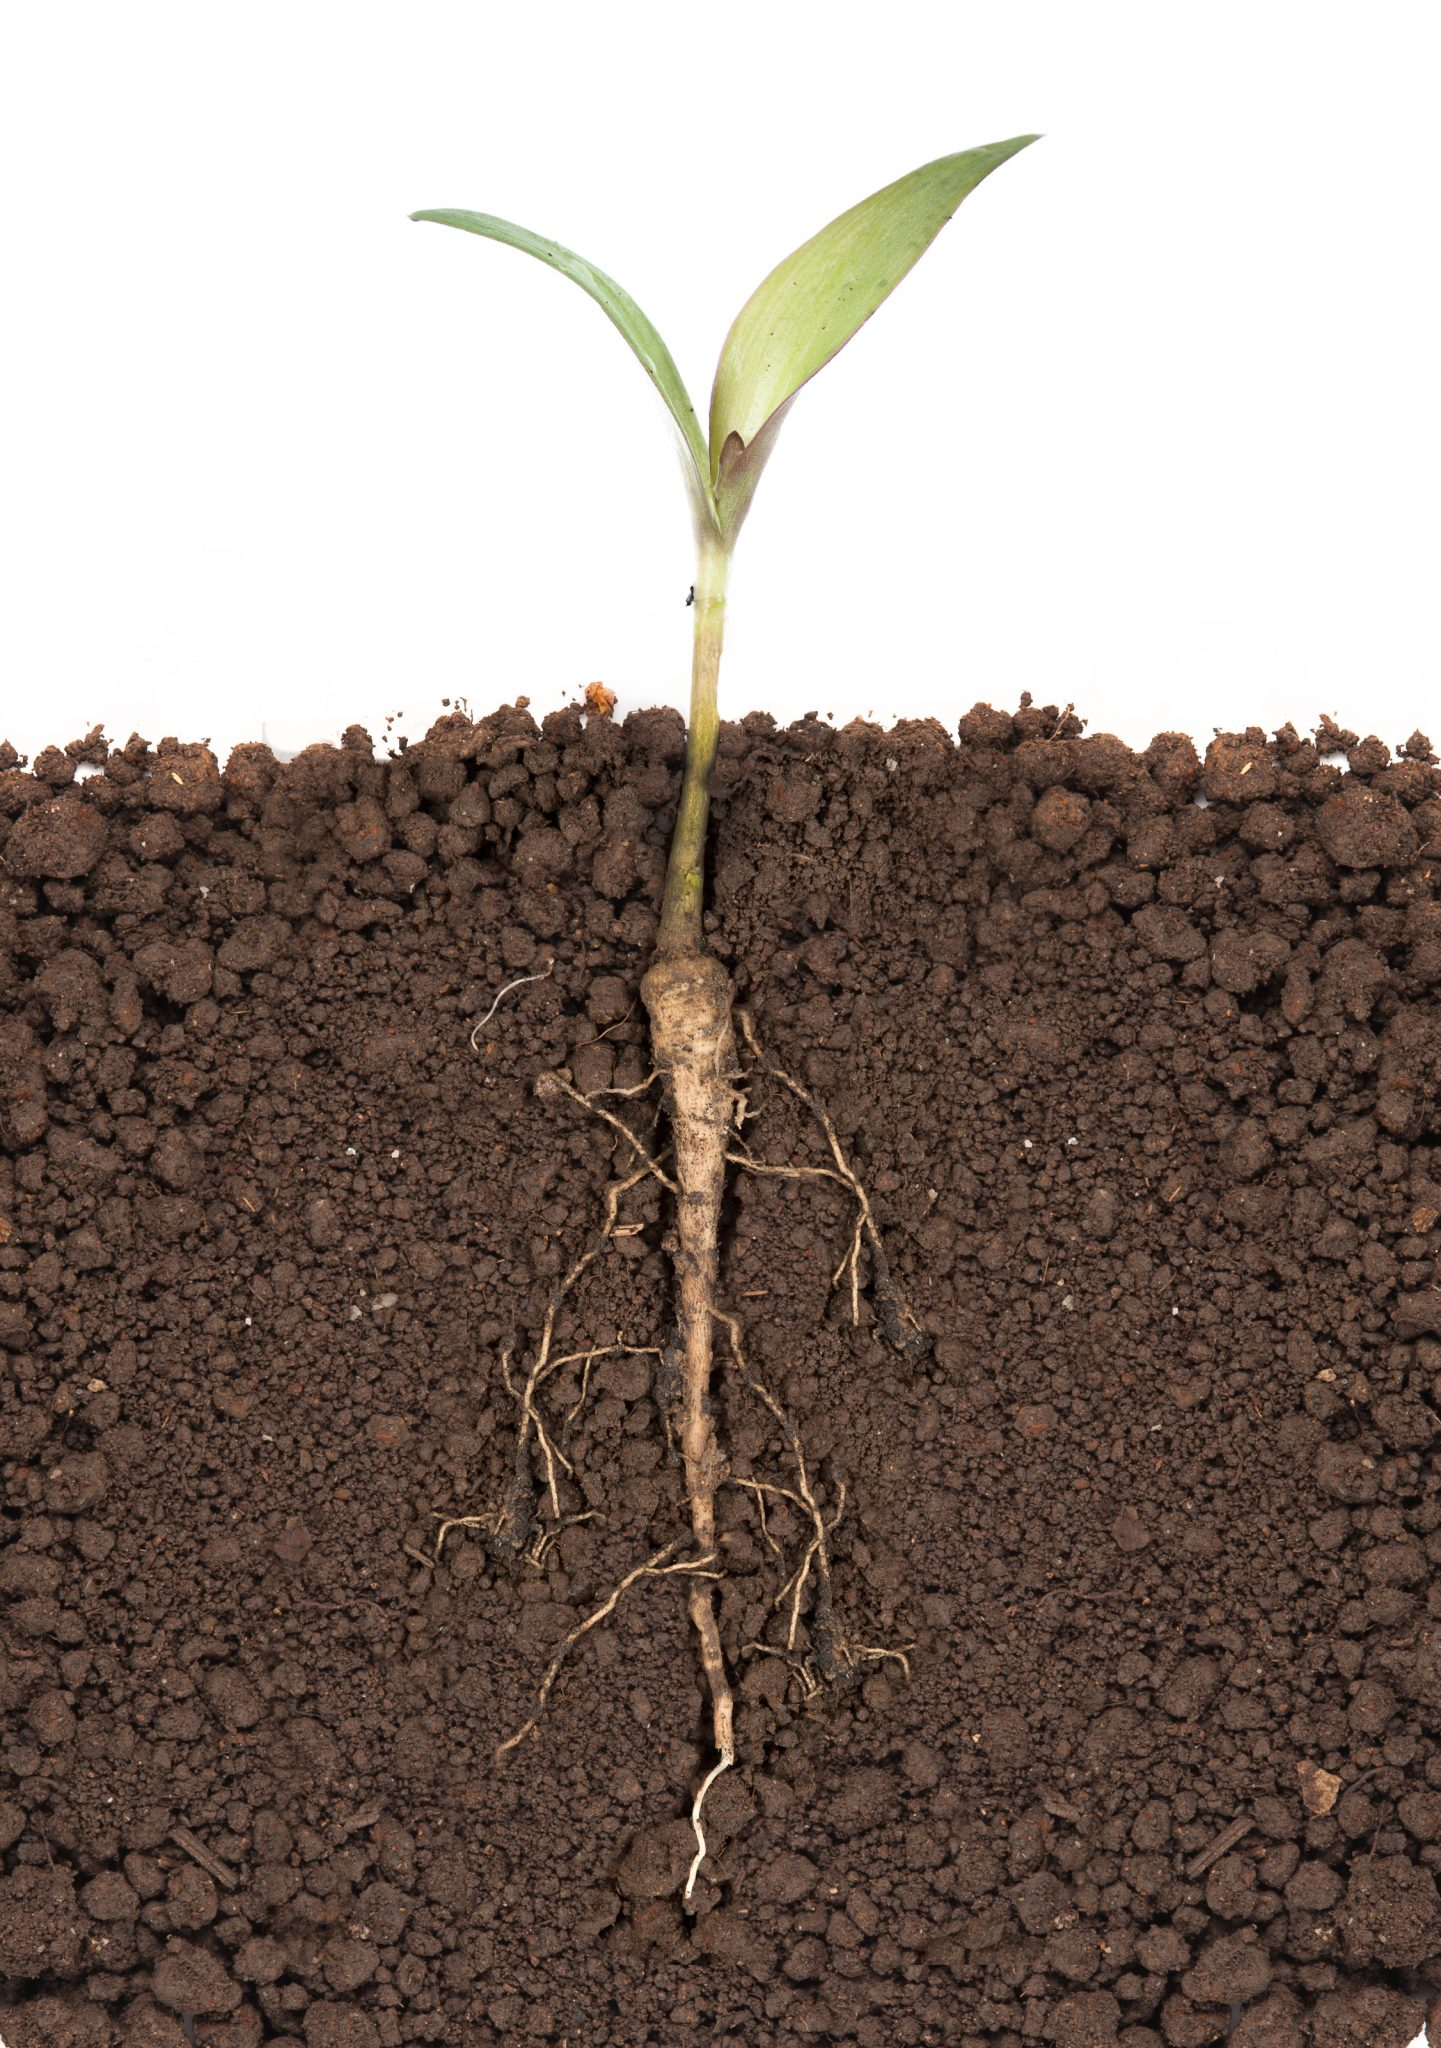 Seedling plant with roots exposed. Photo by shutterstock.com/showcake.